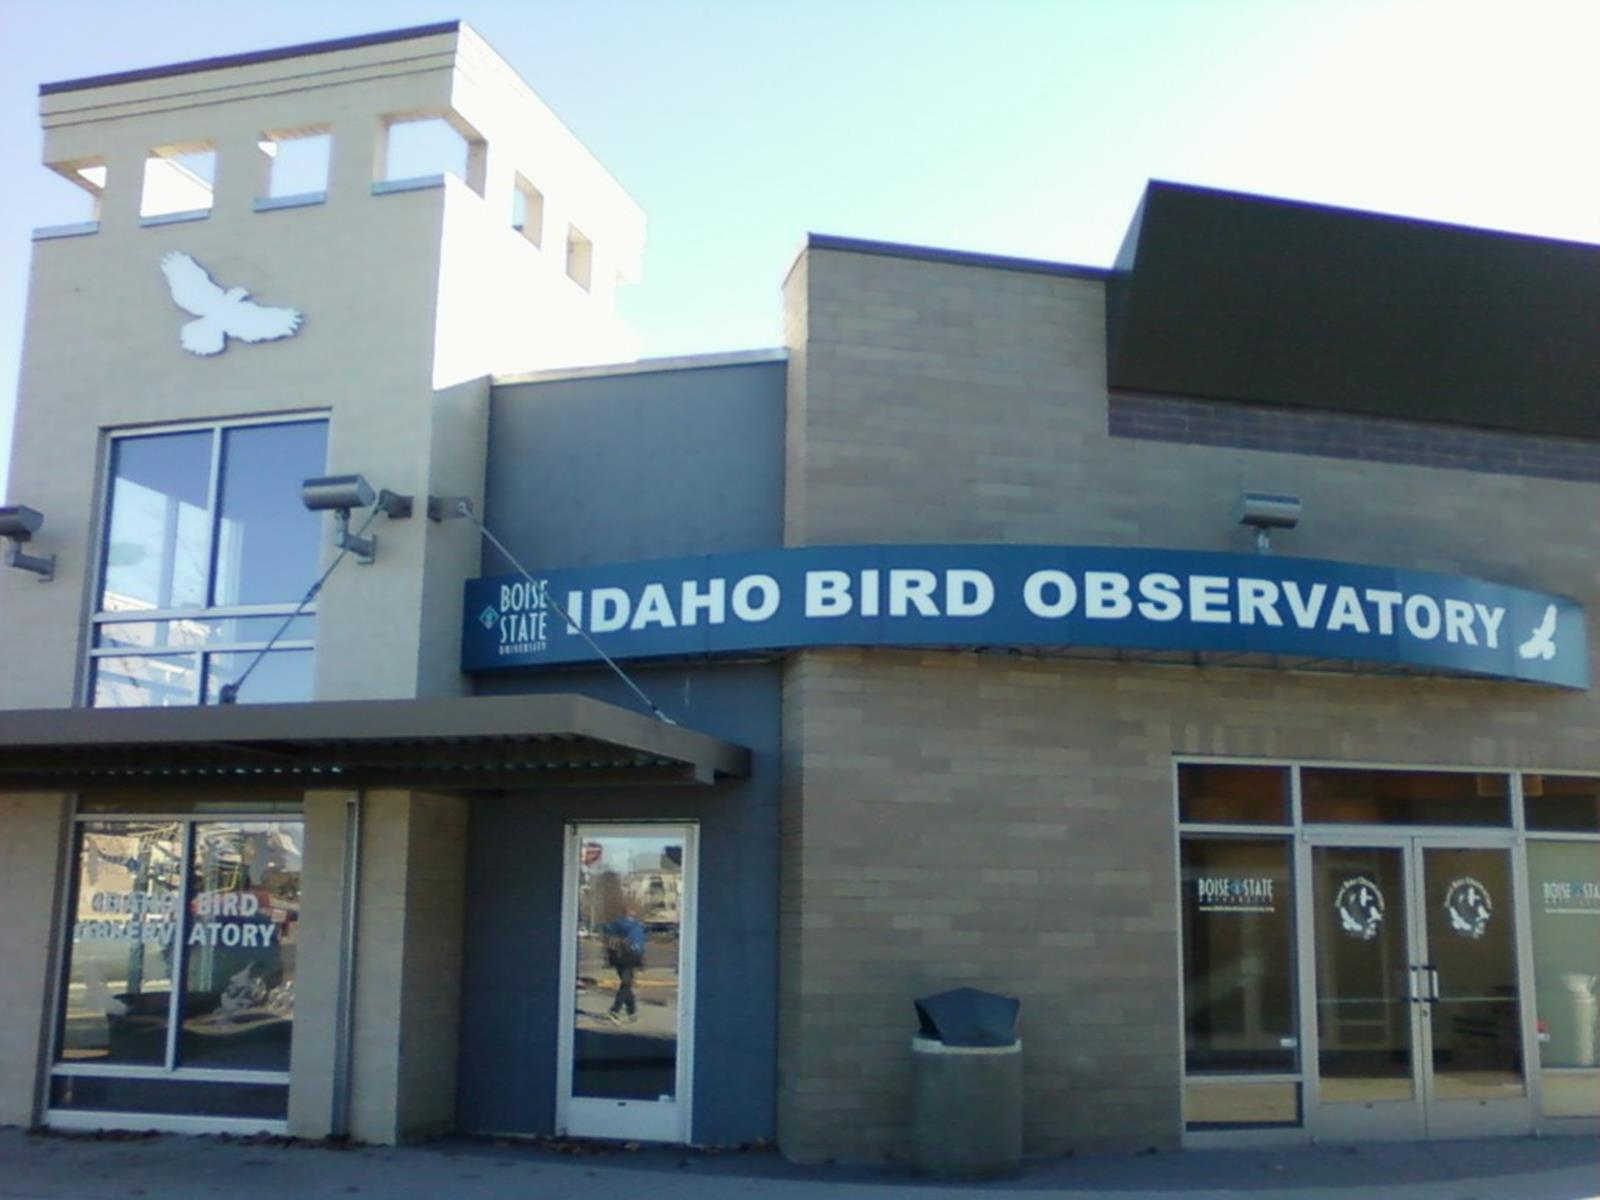 The Idaho Bird Observatory